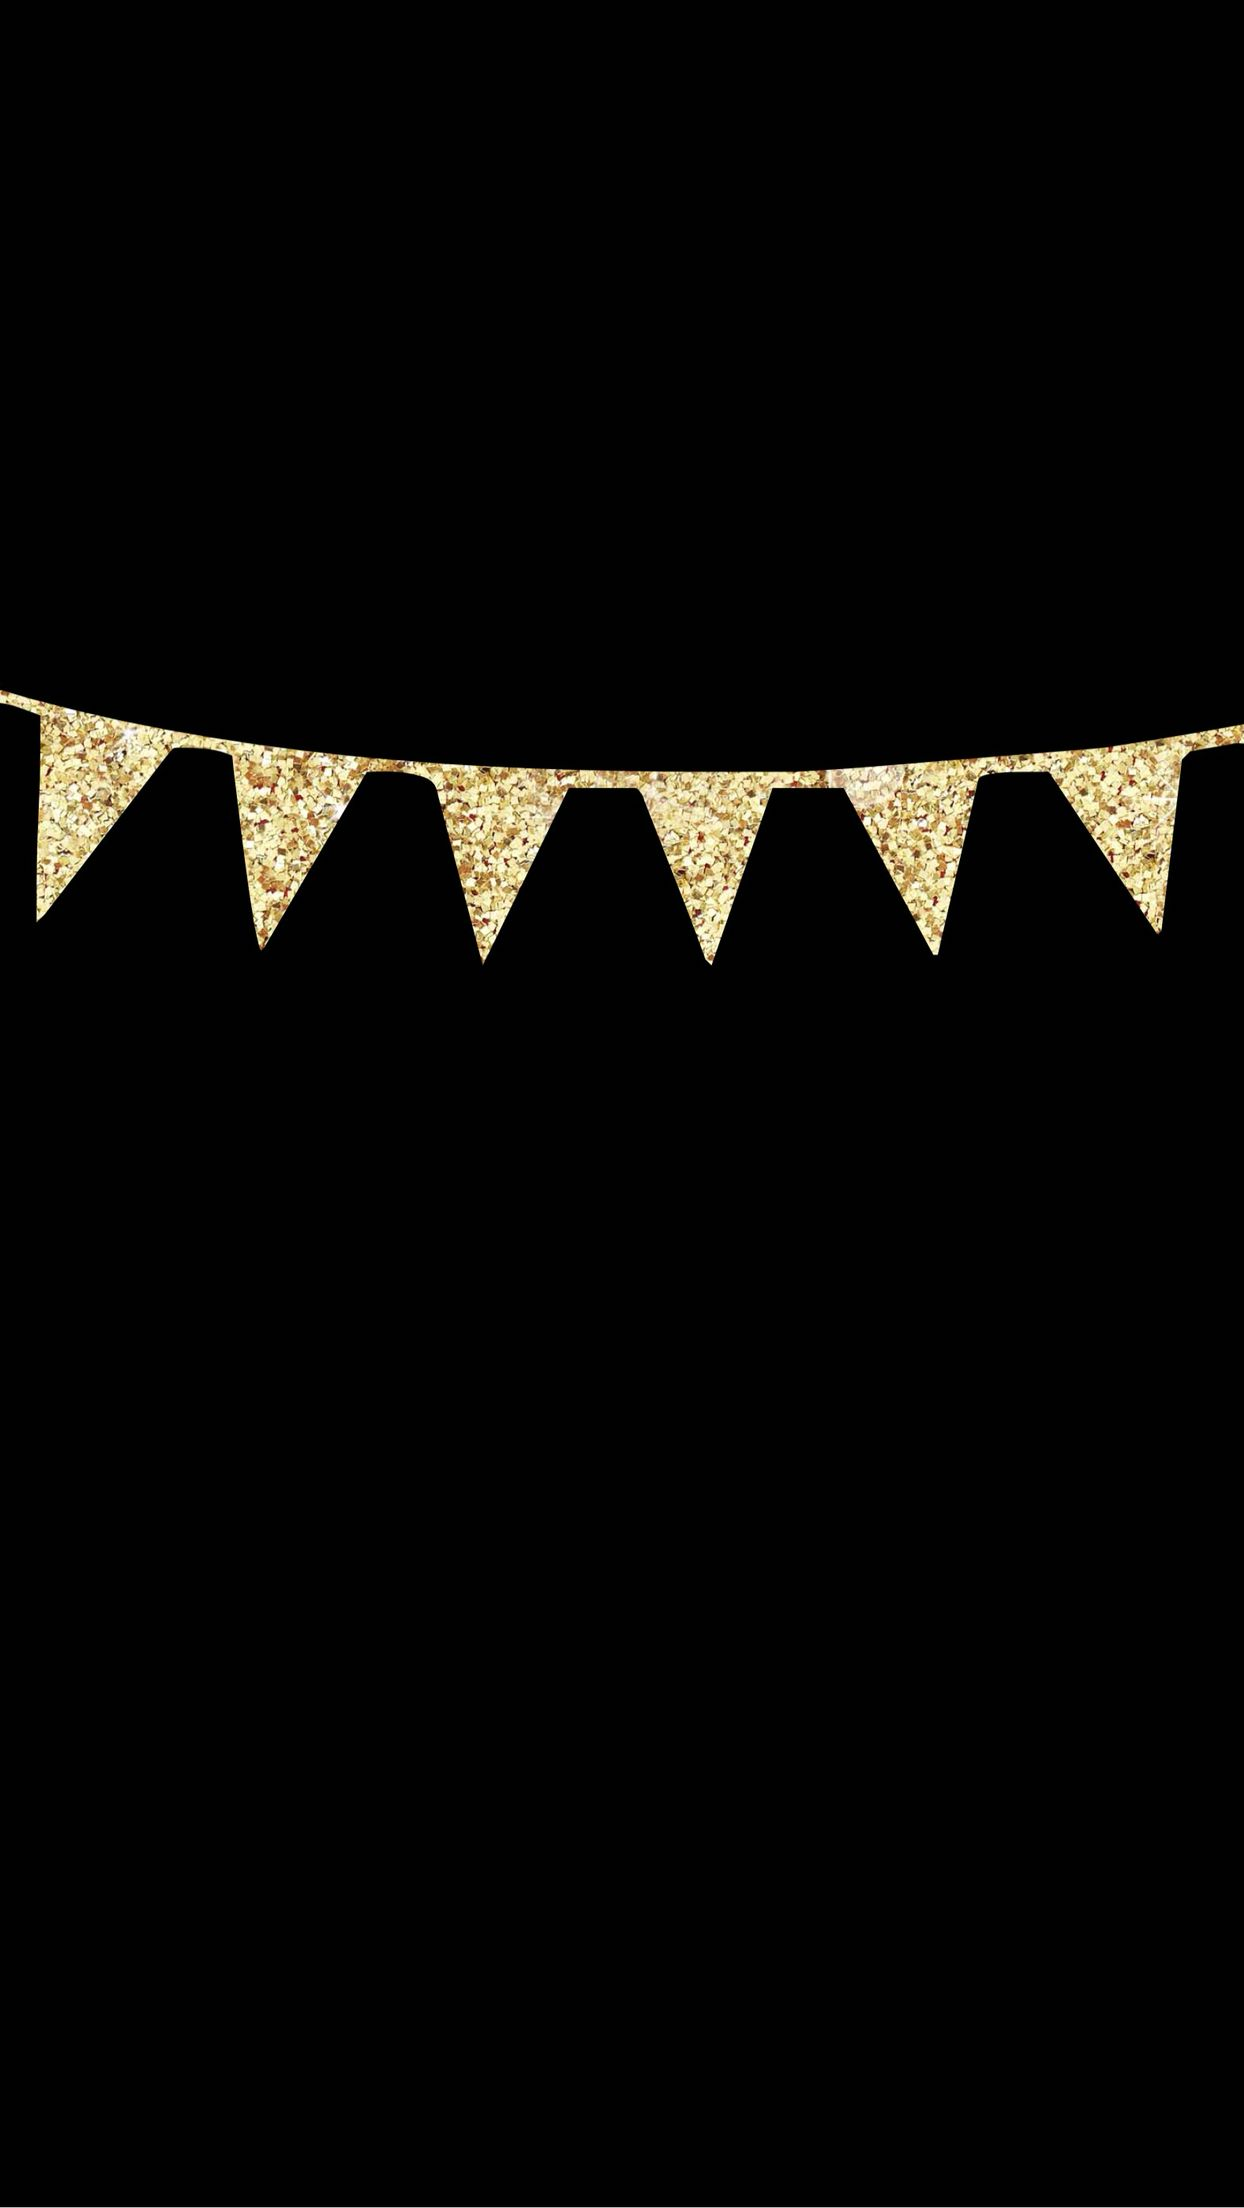 Iphone 6 Plus Lock Screen Wallpaper Black With Gold